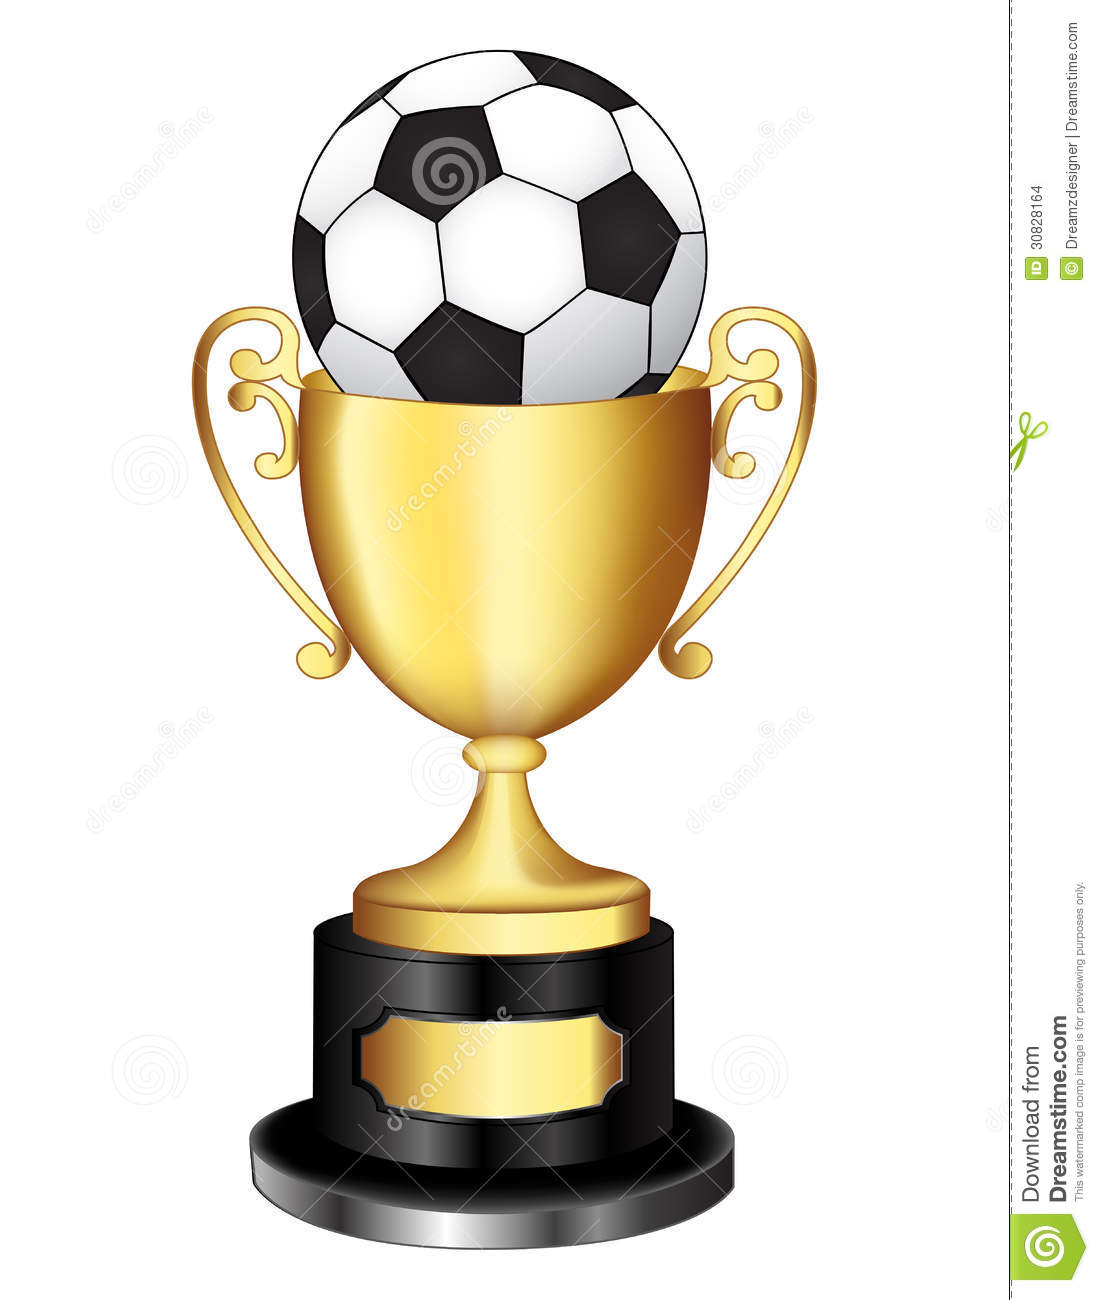 Soccer Medals Clipart.